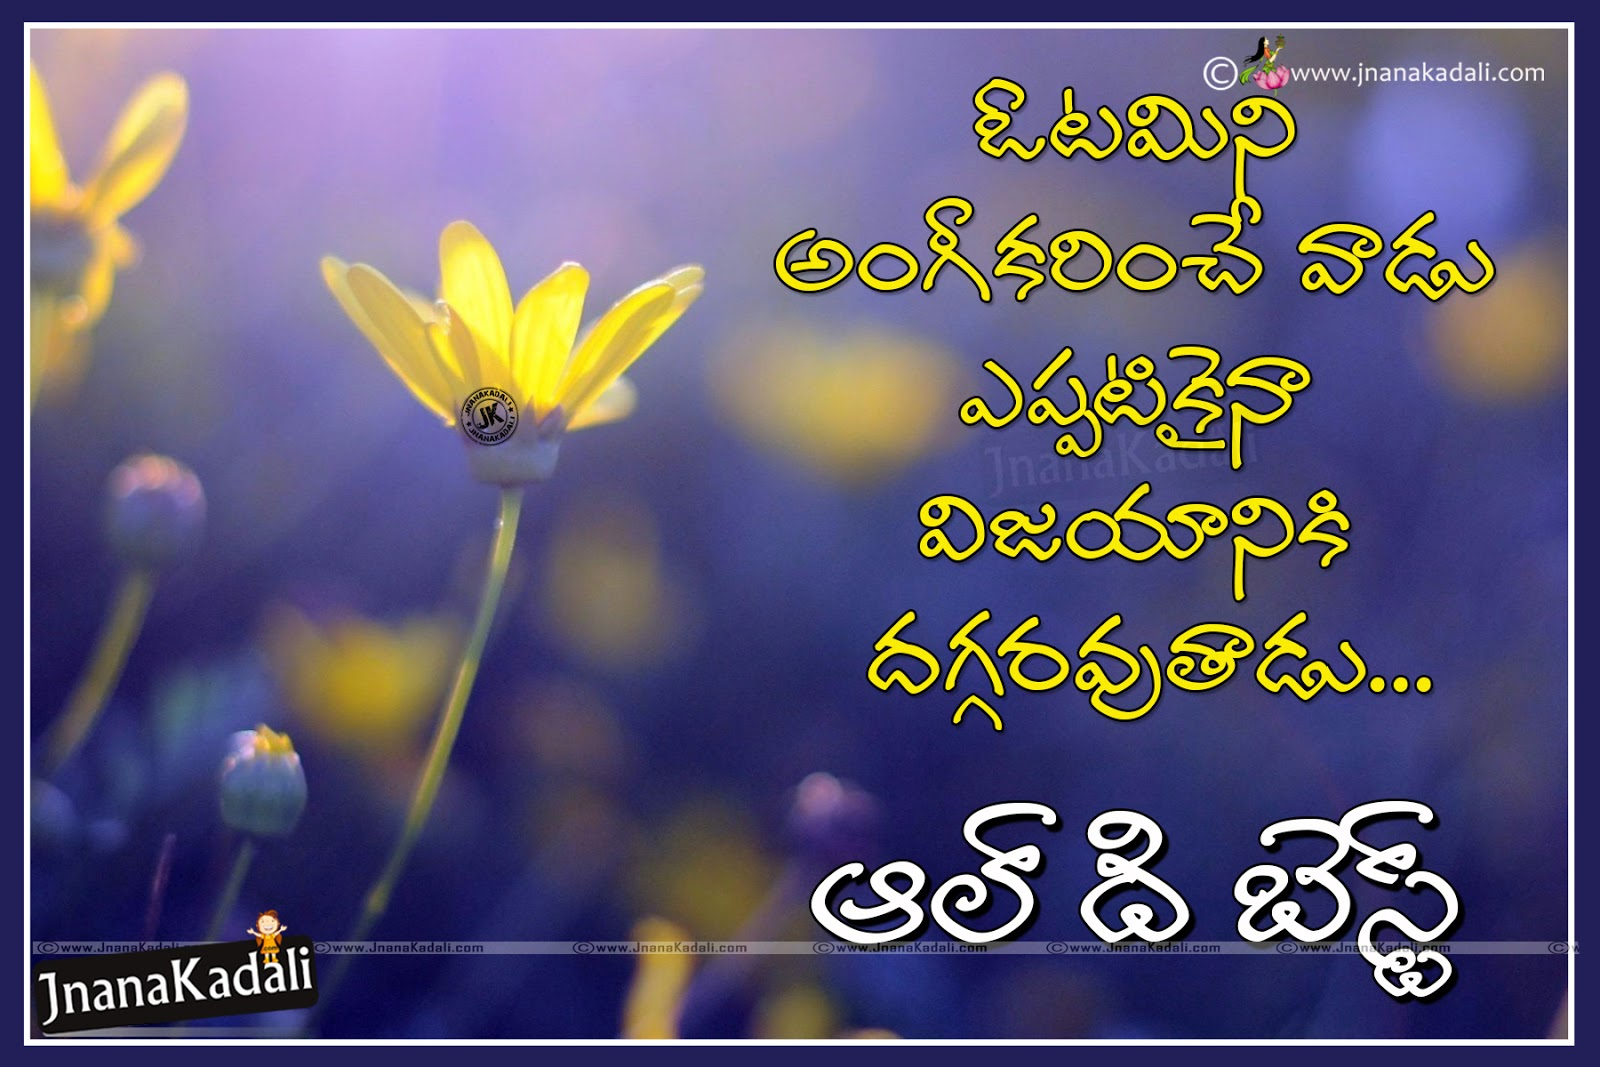 Telugu Comedy Wallpapers With Quotes: Telugu All The Best Most Success Saying With Hd Wallpapers